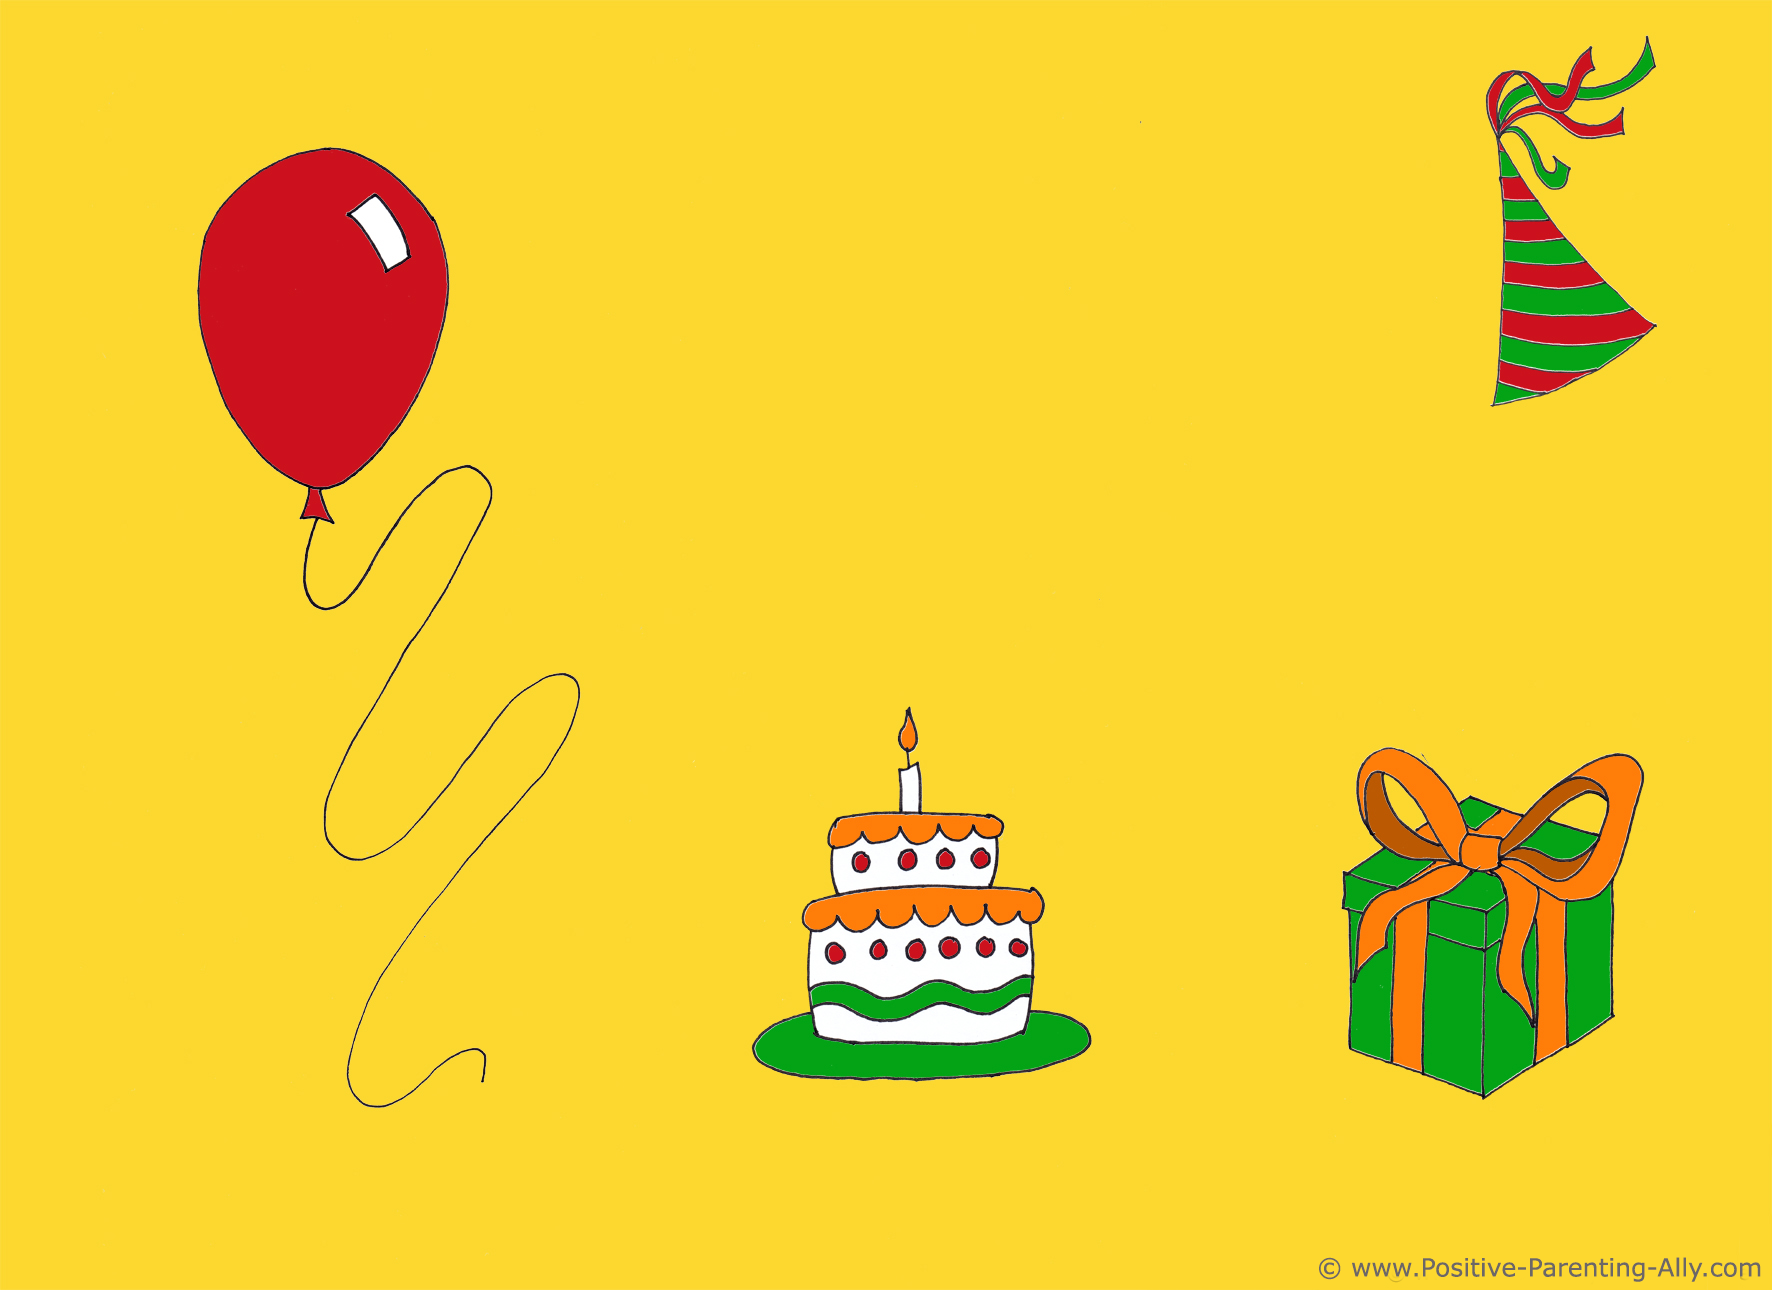 Example of birthday clipart on invite in simple color scheme.